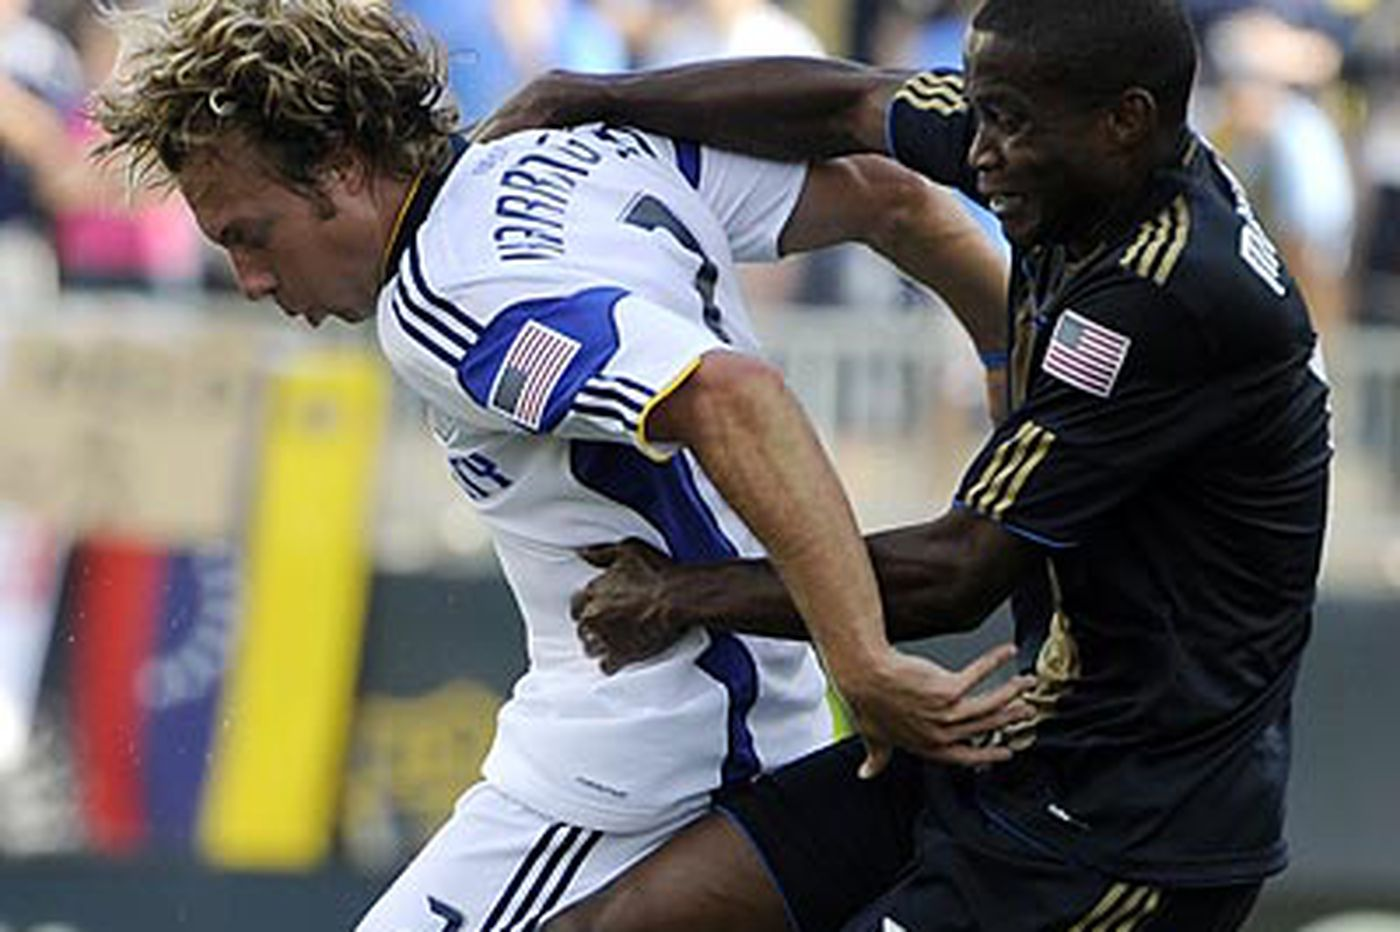 Union resume play, focusing on defense